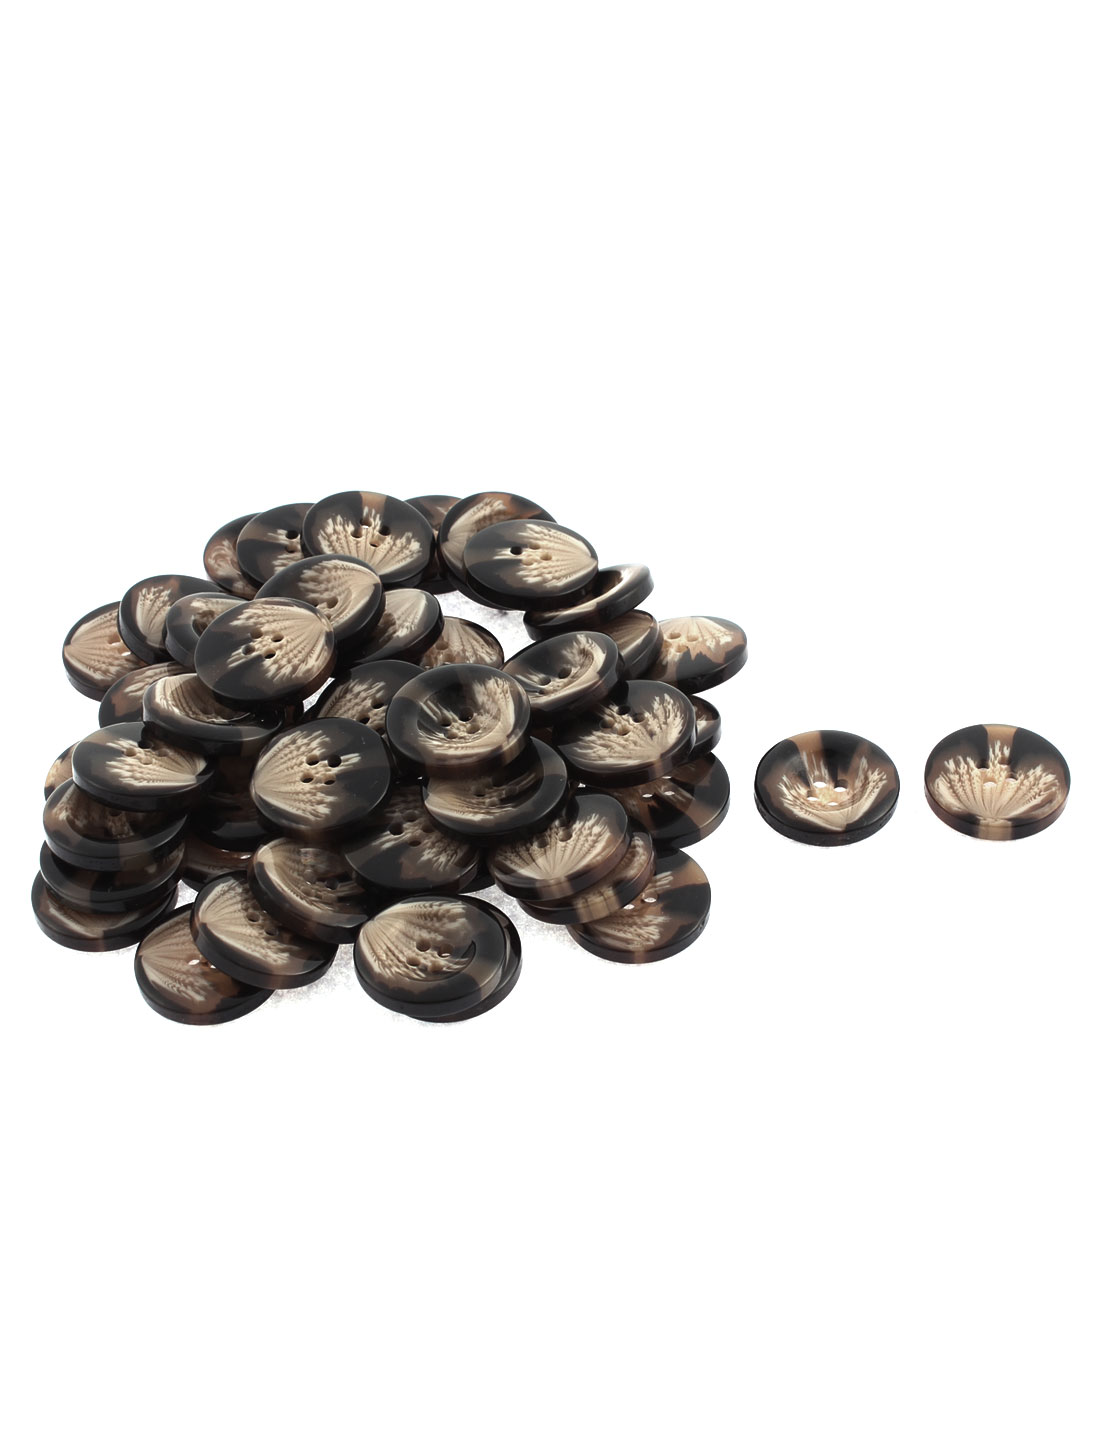 50pcs Round Sewing Buttons 25mm Dia Coffee Color for Coat Jacket